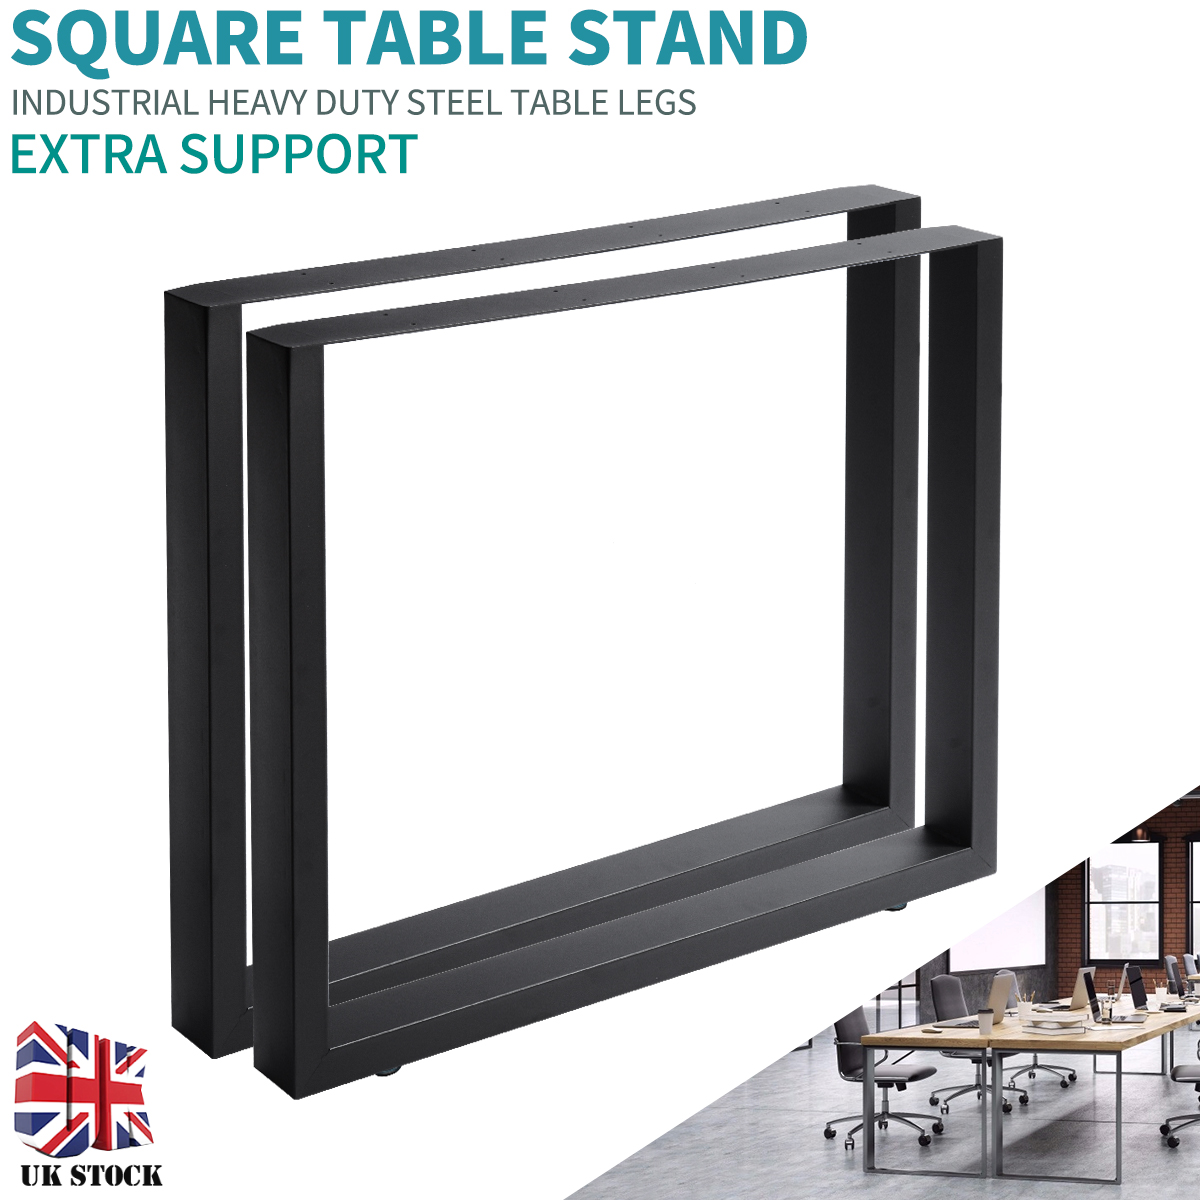 4 Style Geometric Table Legs Square Trapezium X Shape Industrial Design Wide Steel Table Legs For Dining Benches Office Desk New